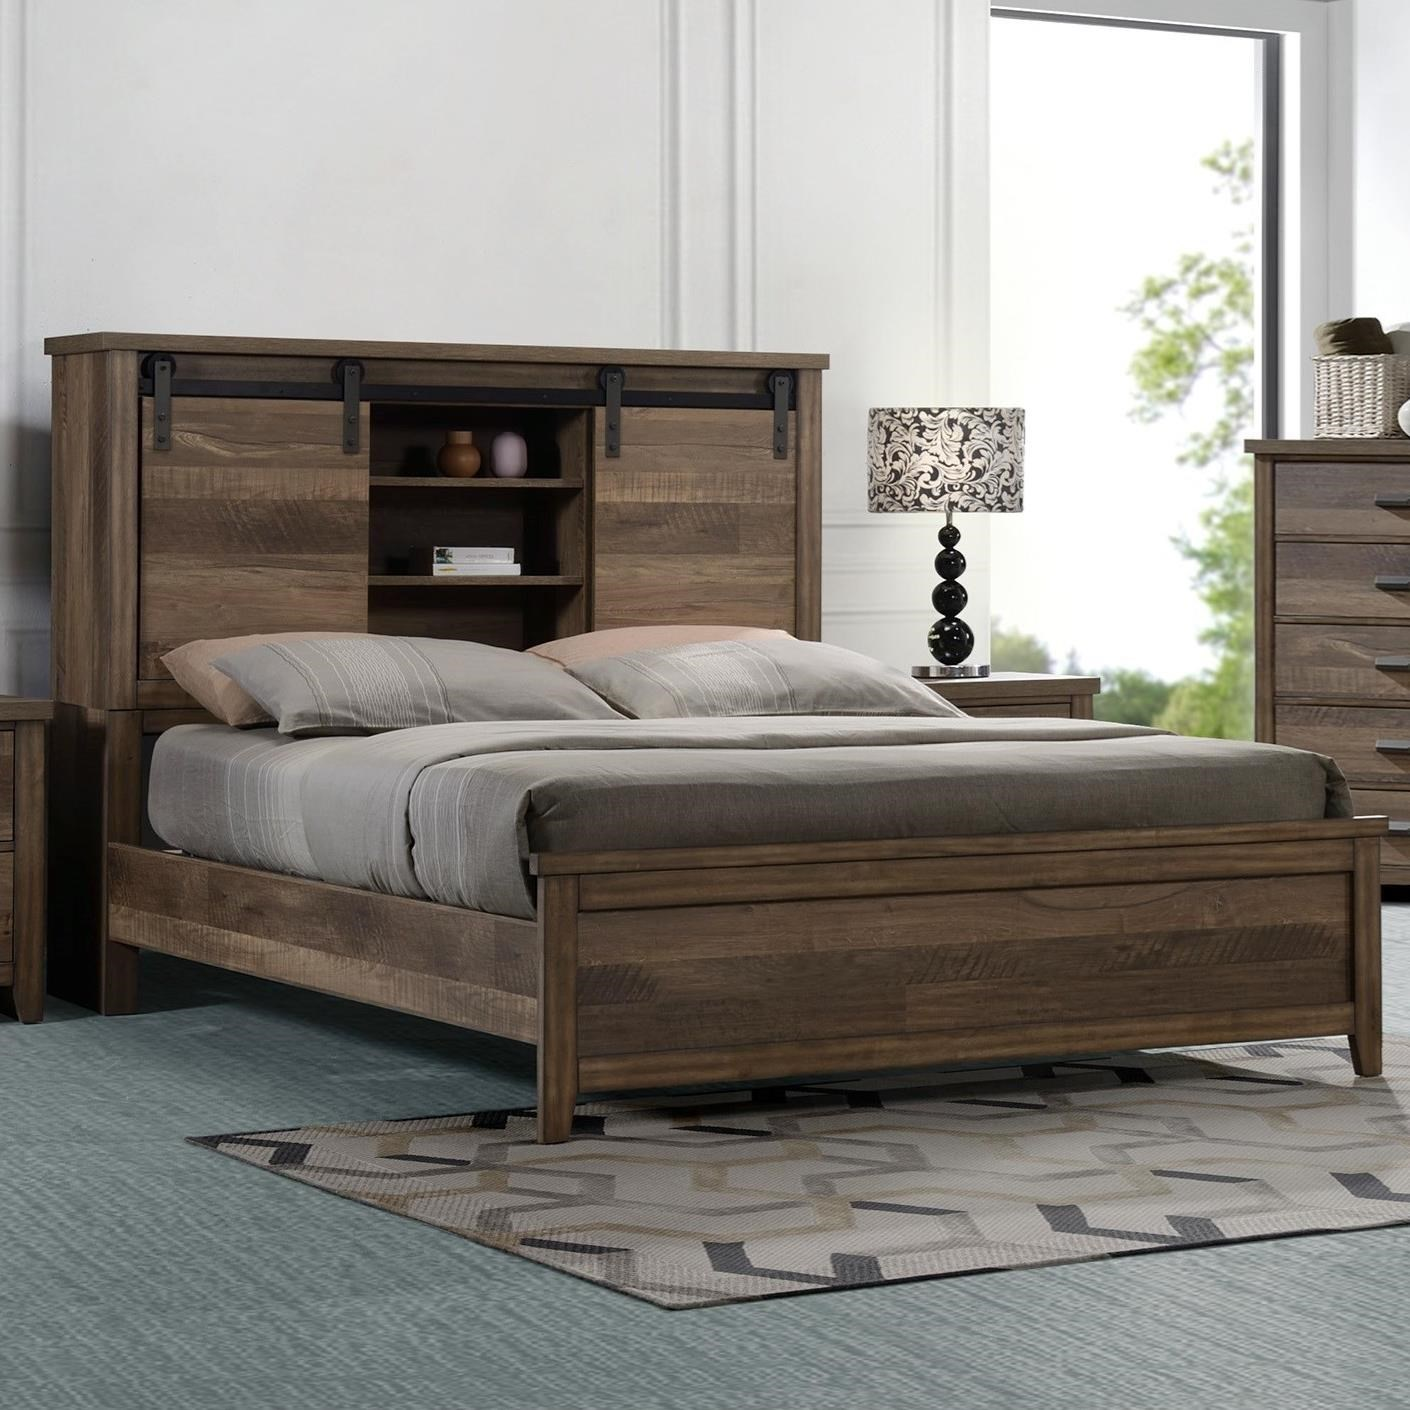 Rustic-Industrial King Bookcase Bed